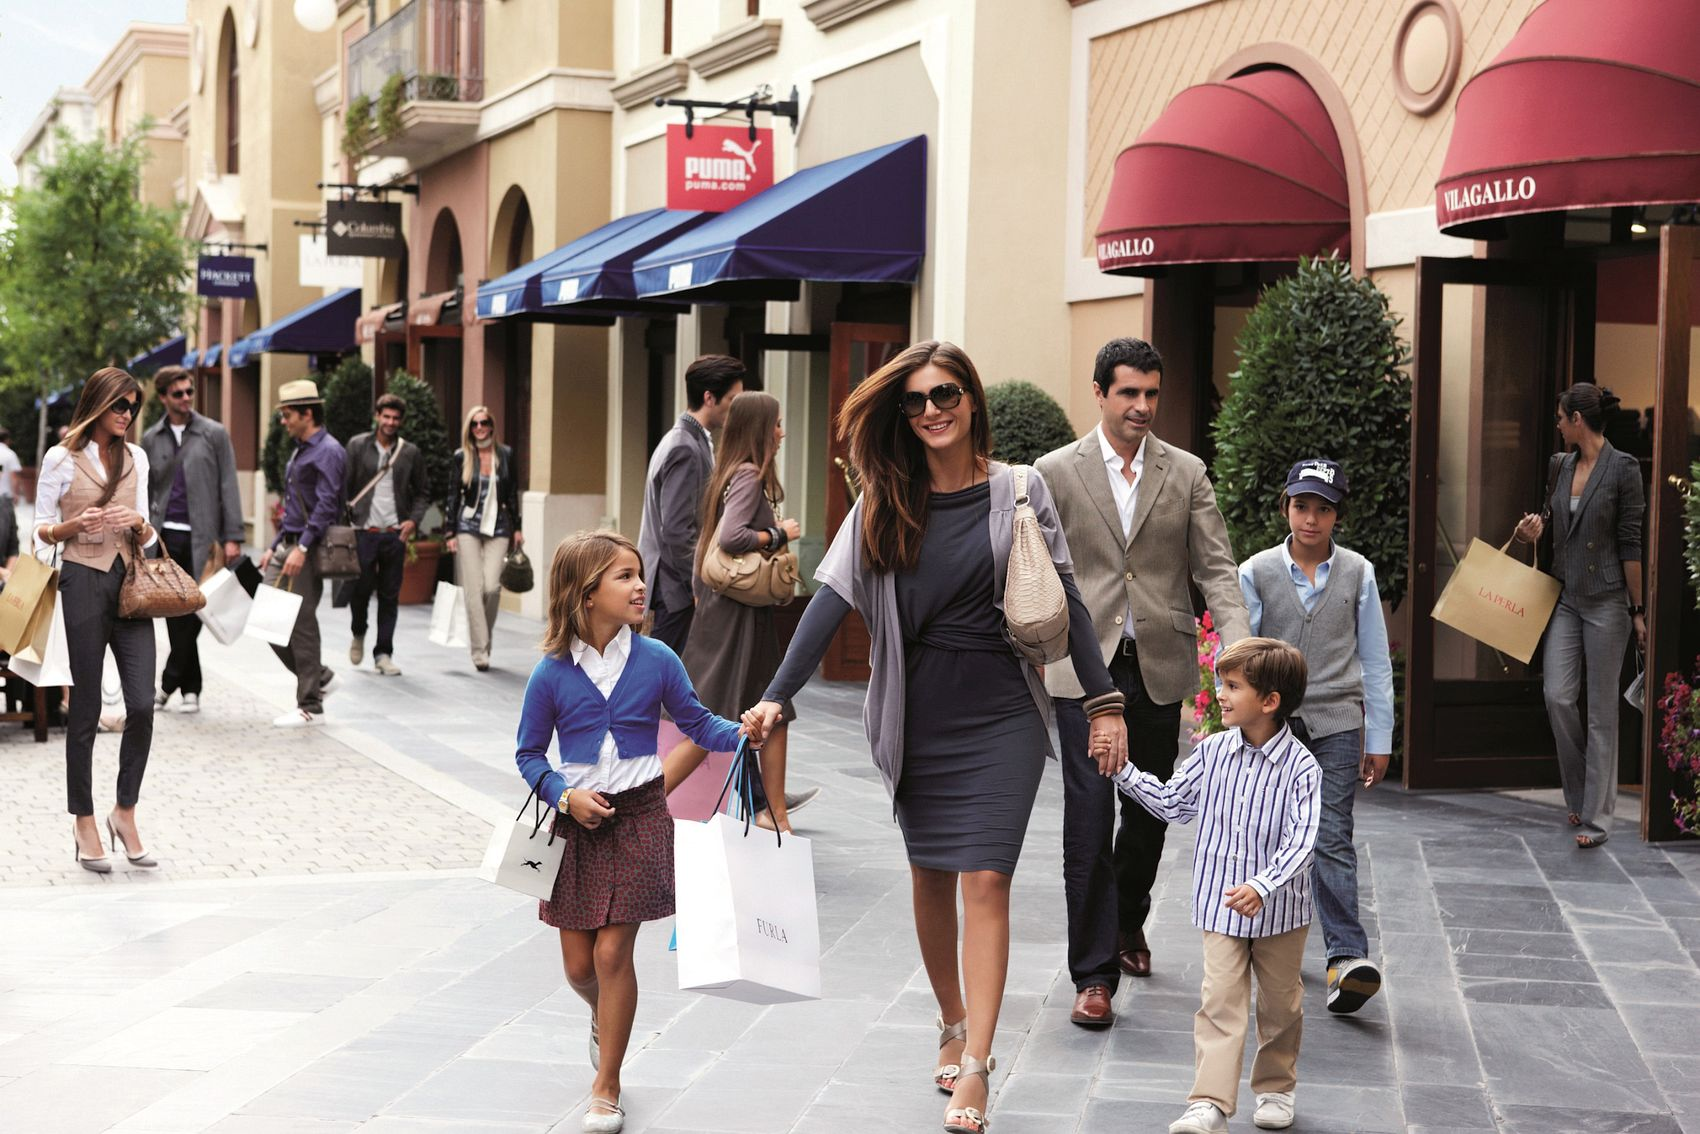 Las rozas village luxury outlet shopping madrid for Design outlet milano